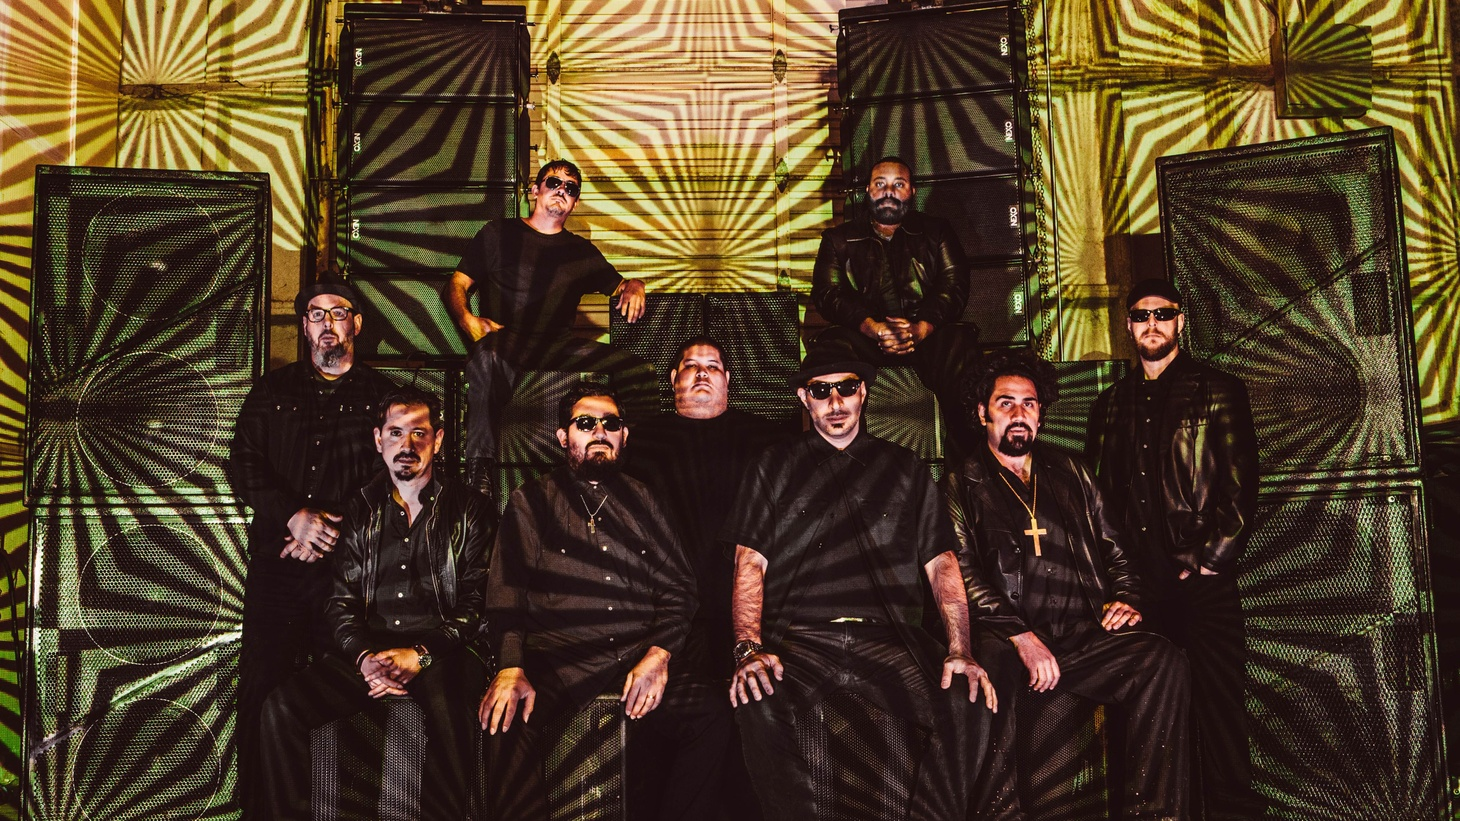 """Austin-based Latin funk band Brownout put a new spin on the music of Black Sabbath with their new EP. Today's Top Tune is a mind-expanding version of """"Planet Caravan."""""""